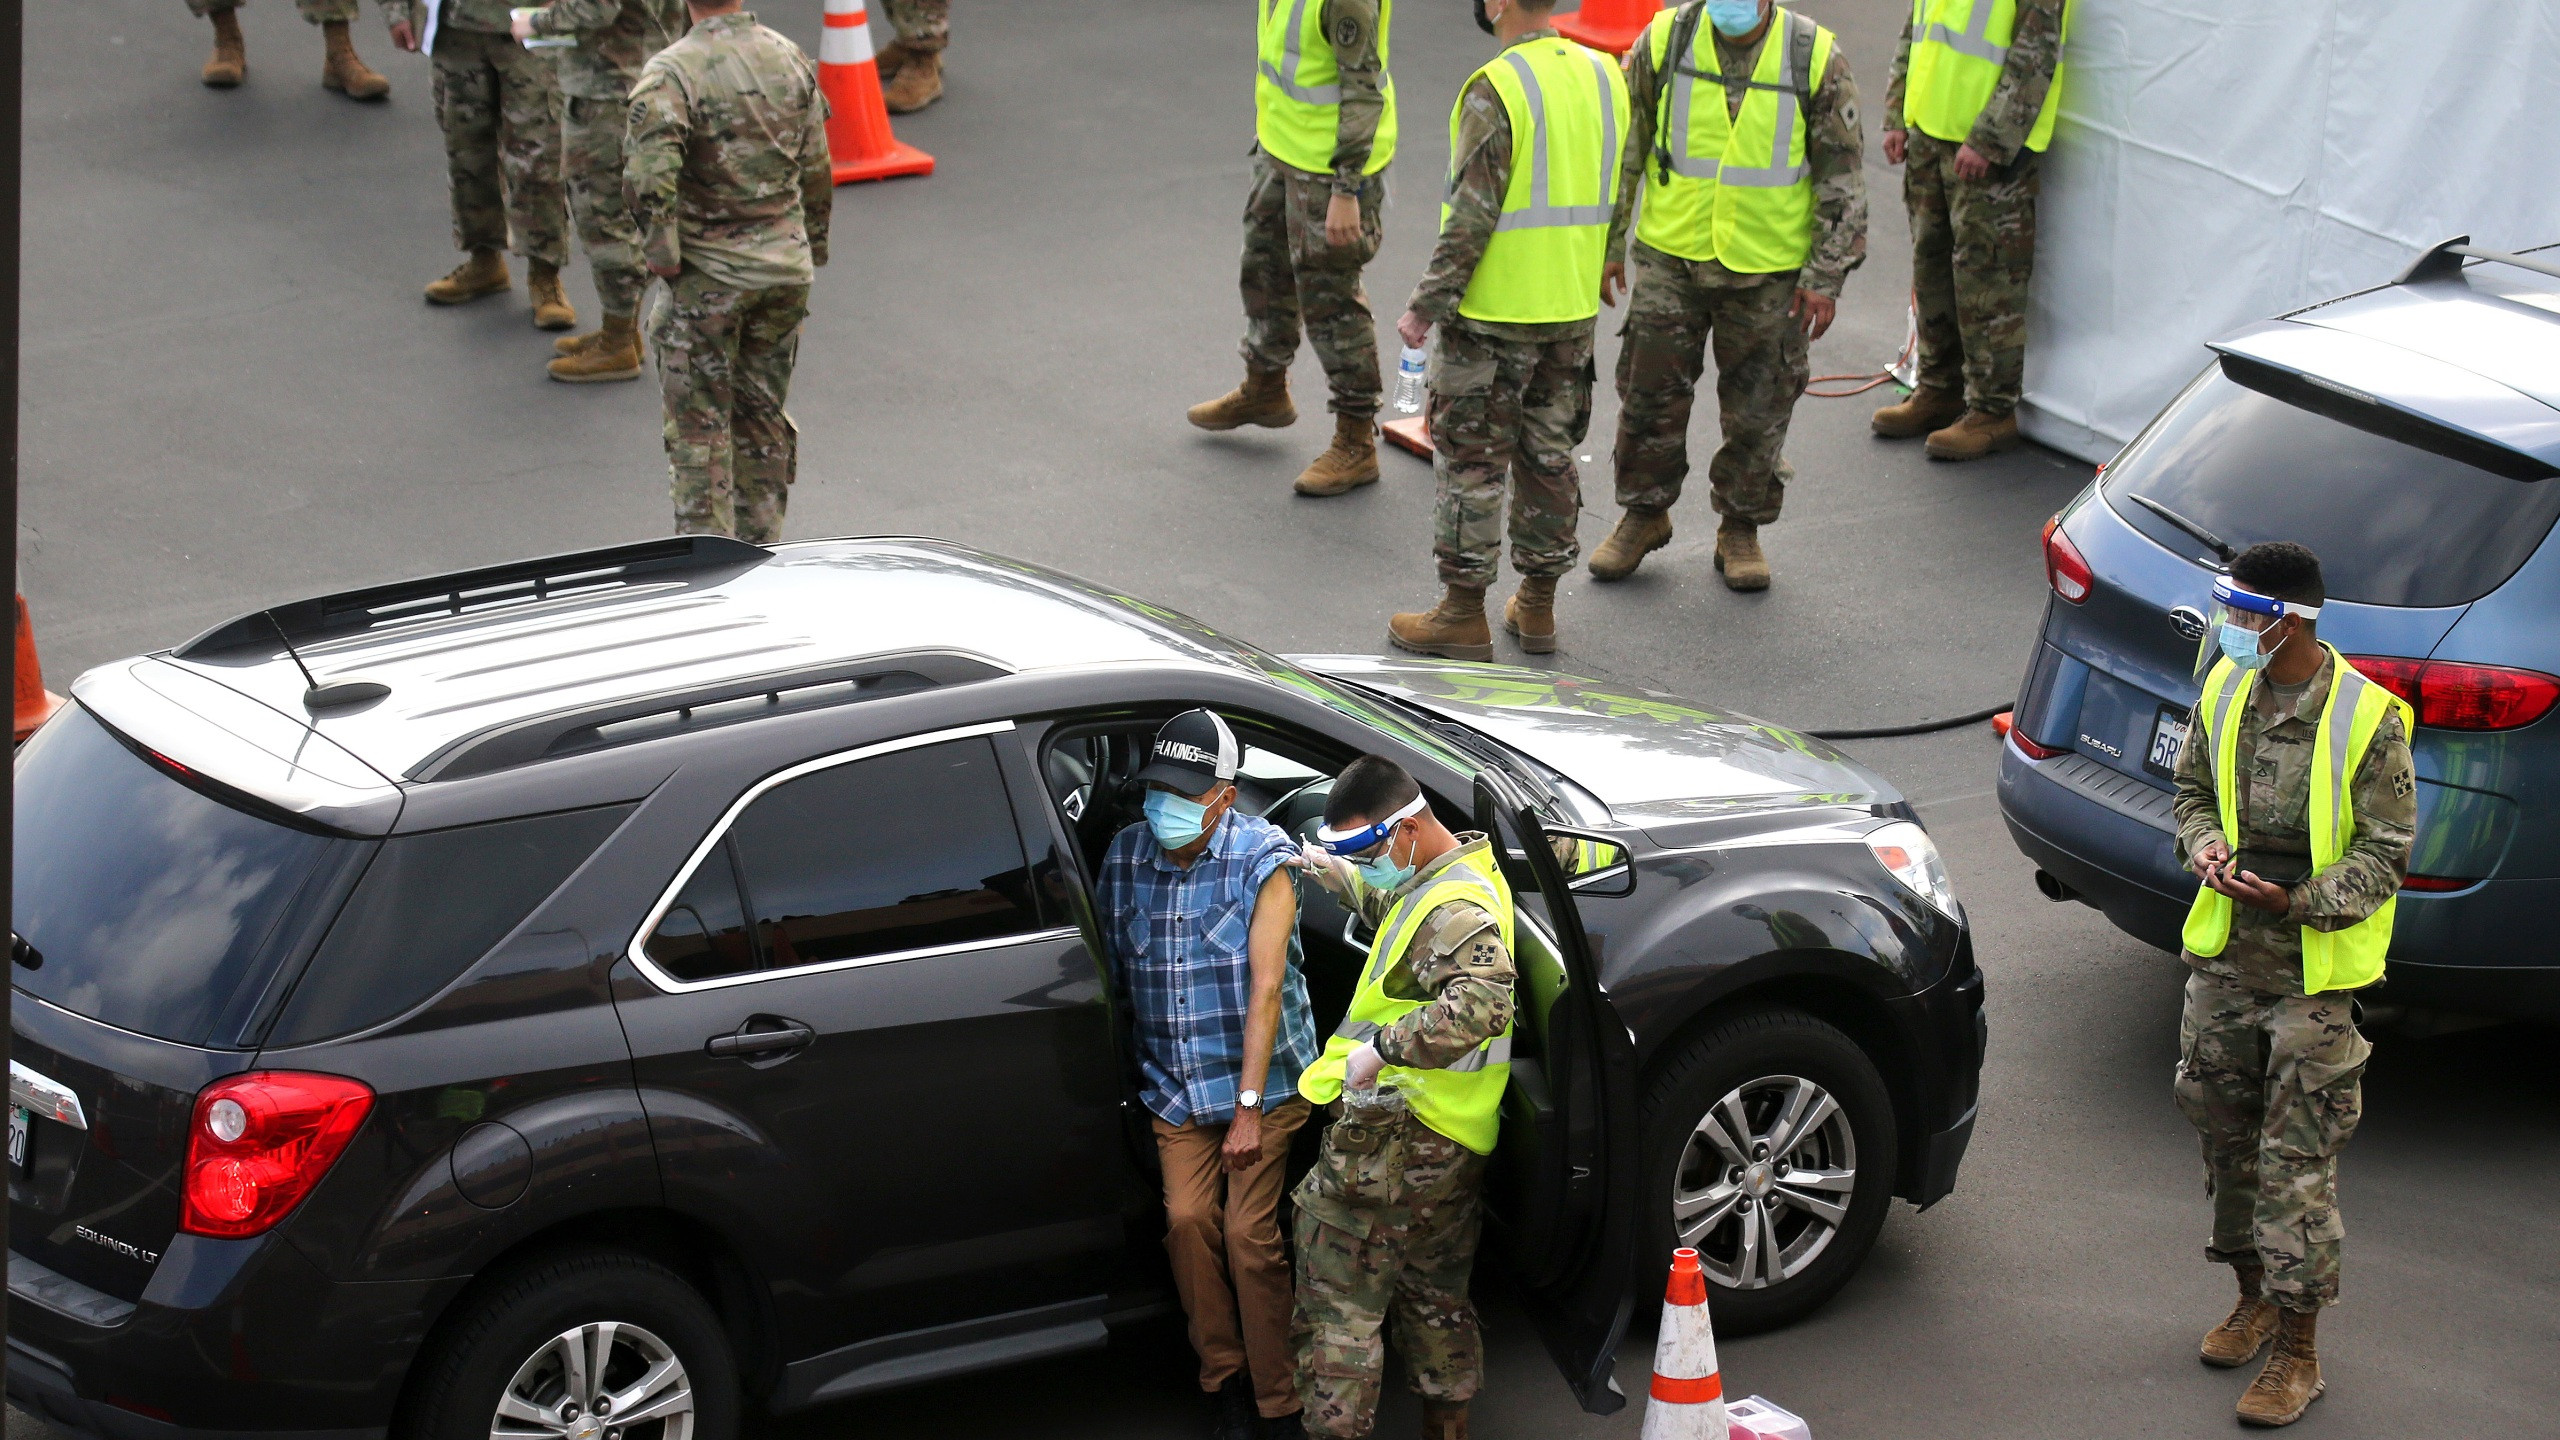 A person is vaccinated by a member of the National Guard at a new large scale COVID-19 vaccination site at Cal State Los Angeles on Feb. 16, 2021. (Mario Tama/Getty Images)